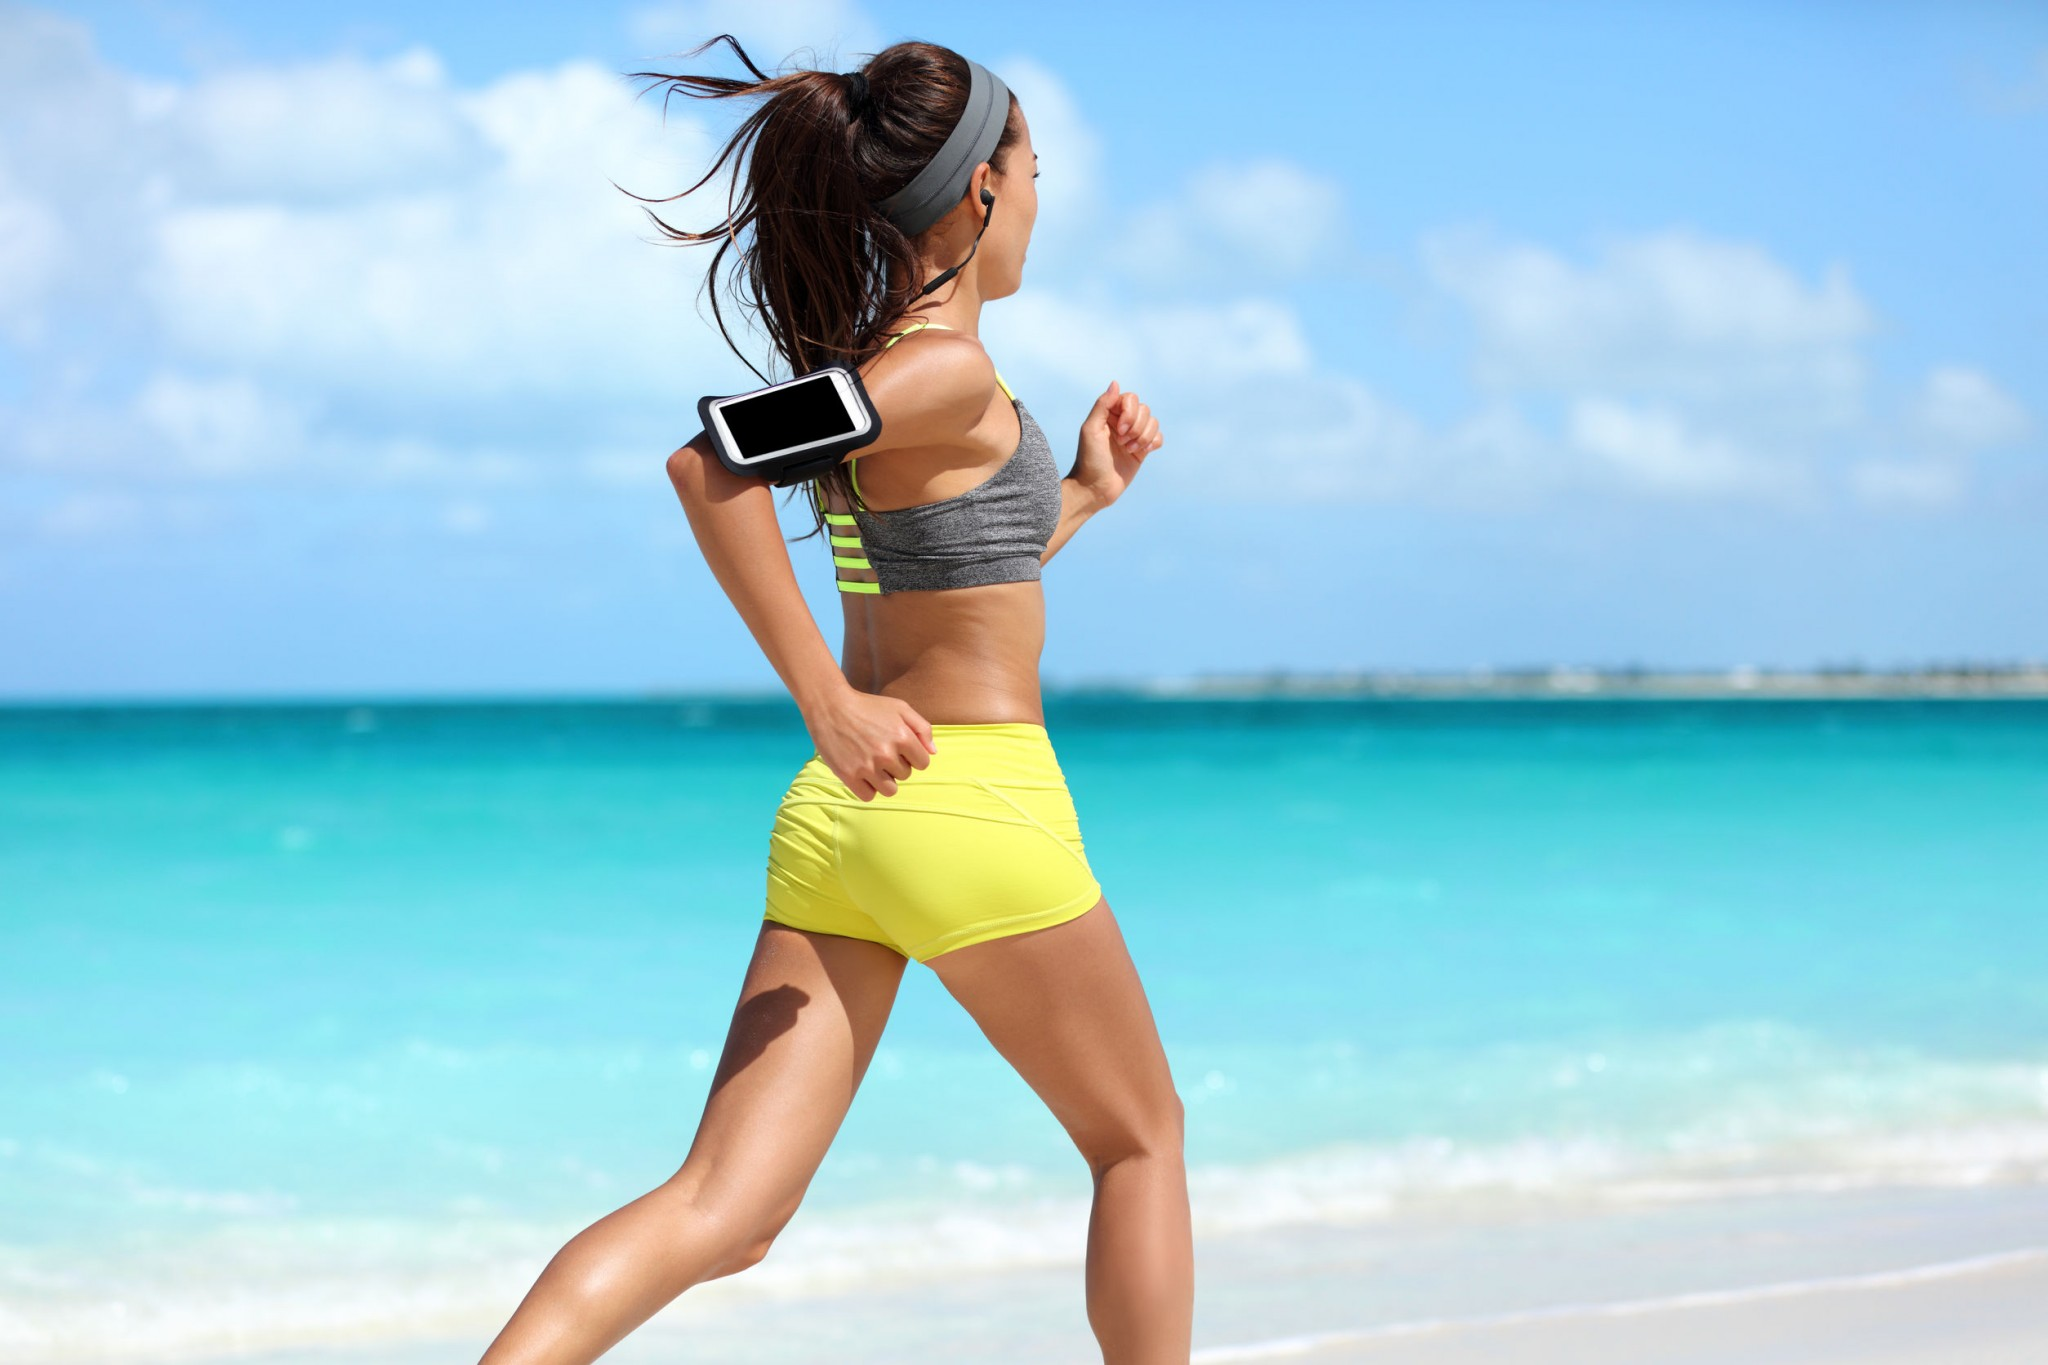 fit-woman-cardio-training